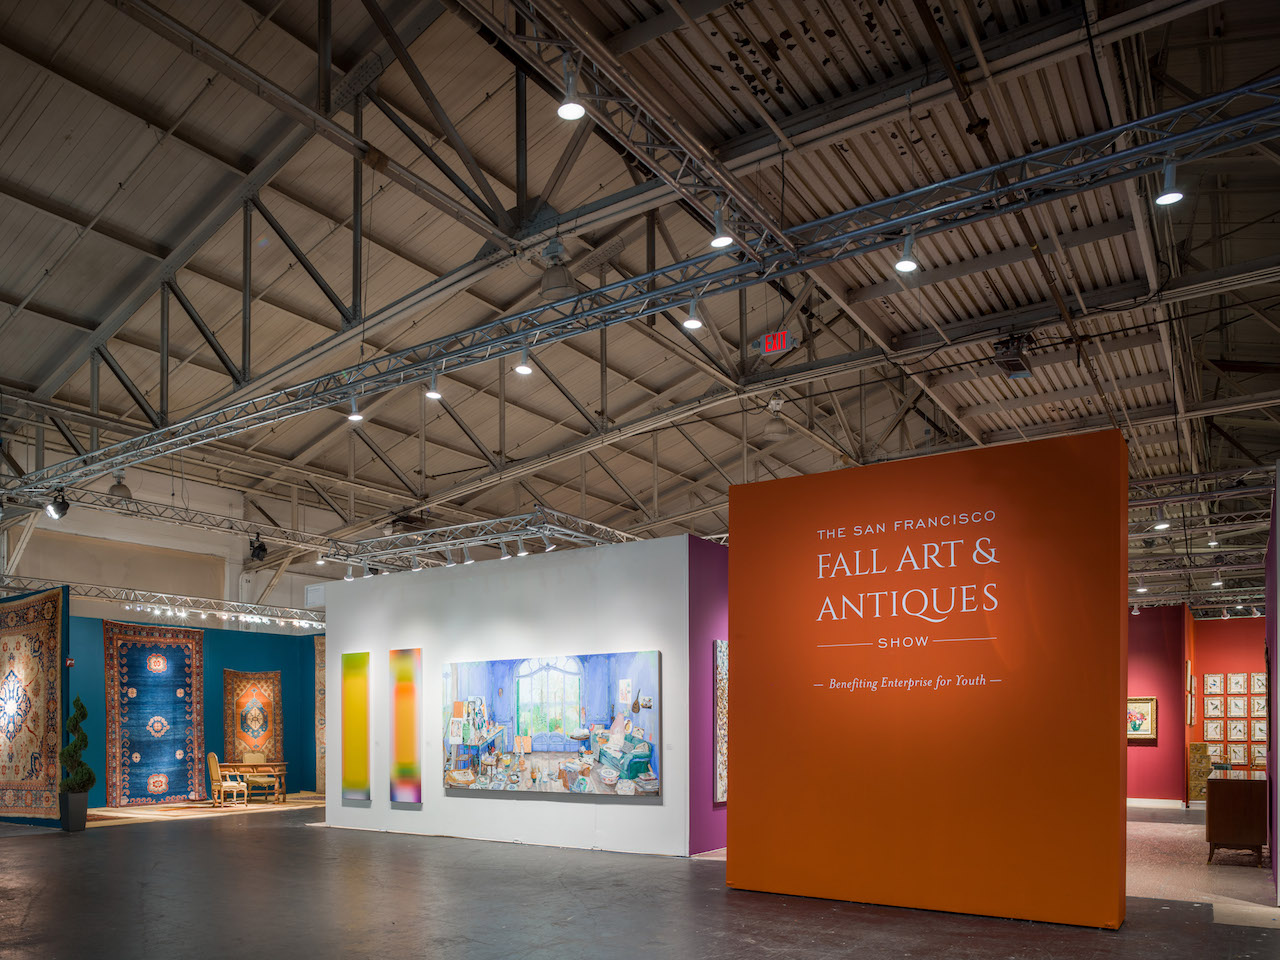 The San Francisco Fall Art & Antiques Show